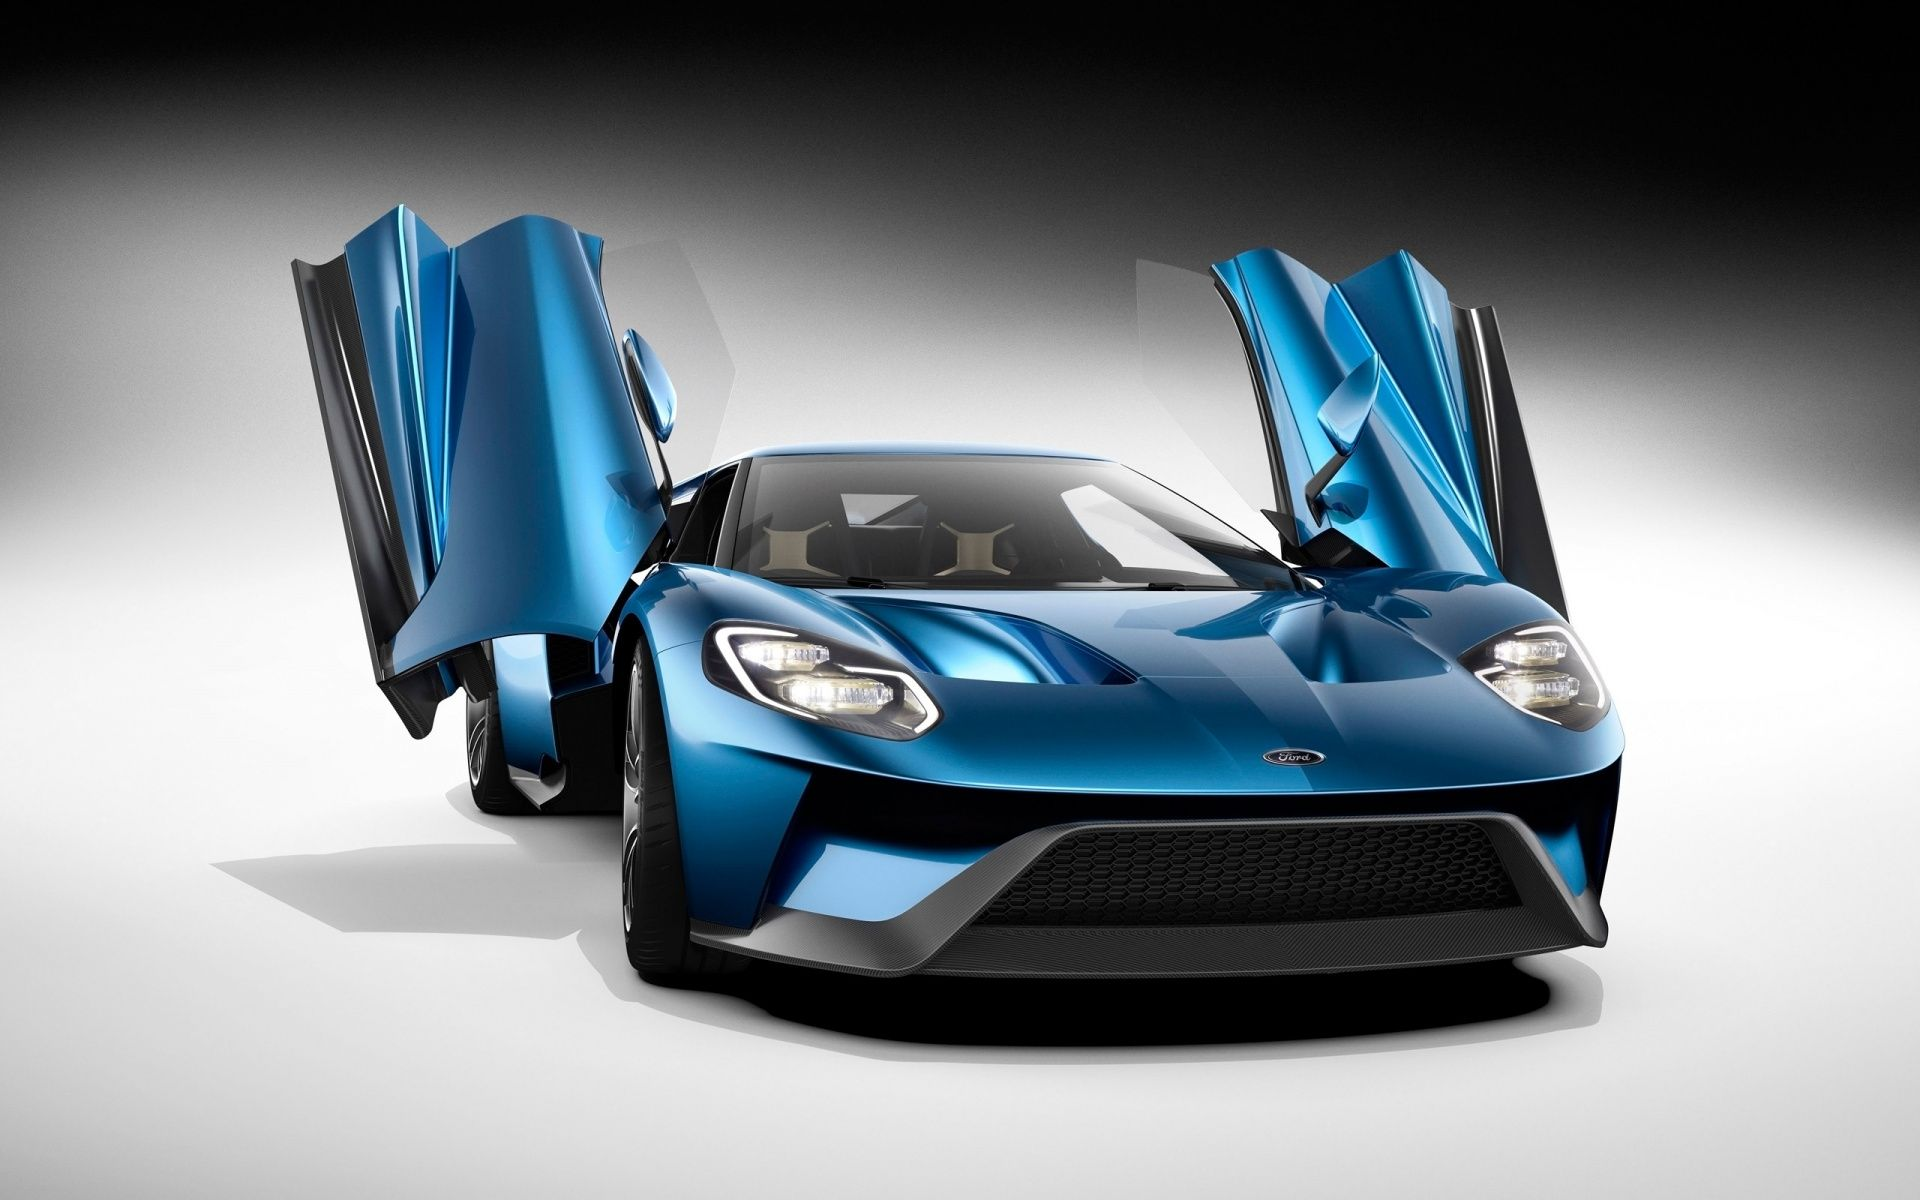 2016 Ford Gt Cool Car Pictures All Cars Wallpapers Super Cars Ford Gt 2017 Ford Gt 2016